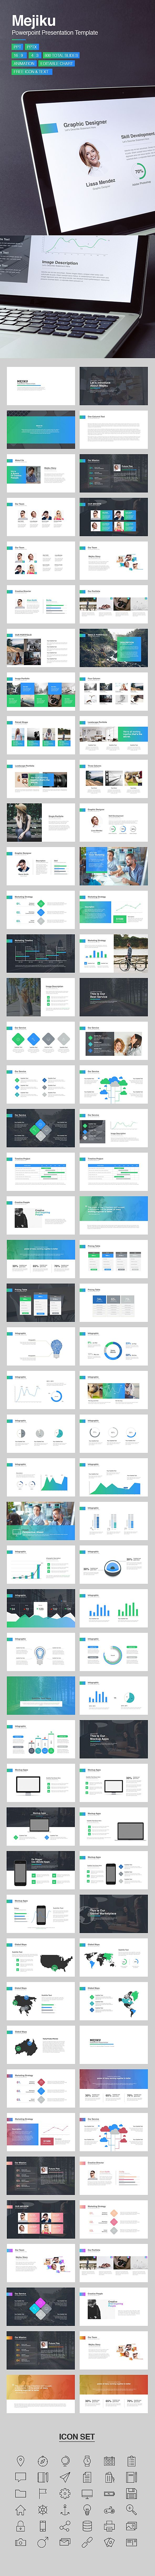 Business or Personal Project Powerpoint Presentation Template #design #slides Download: http://graphicriver.net/item/mejiku-powerpoint-template/14341232?ref=ksioks